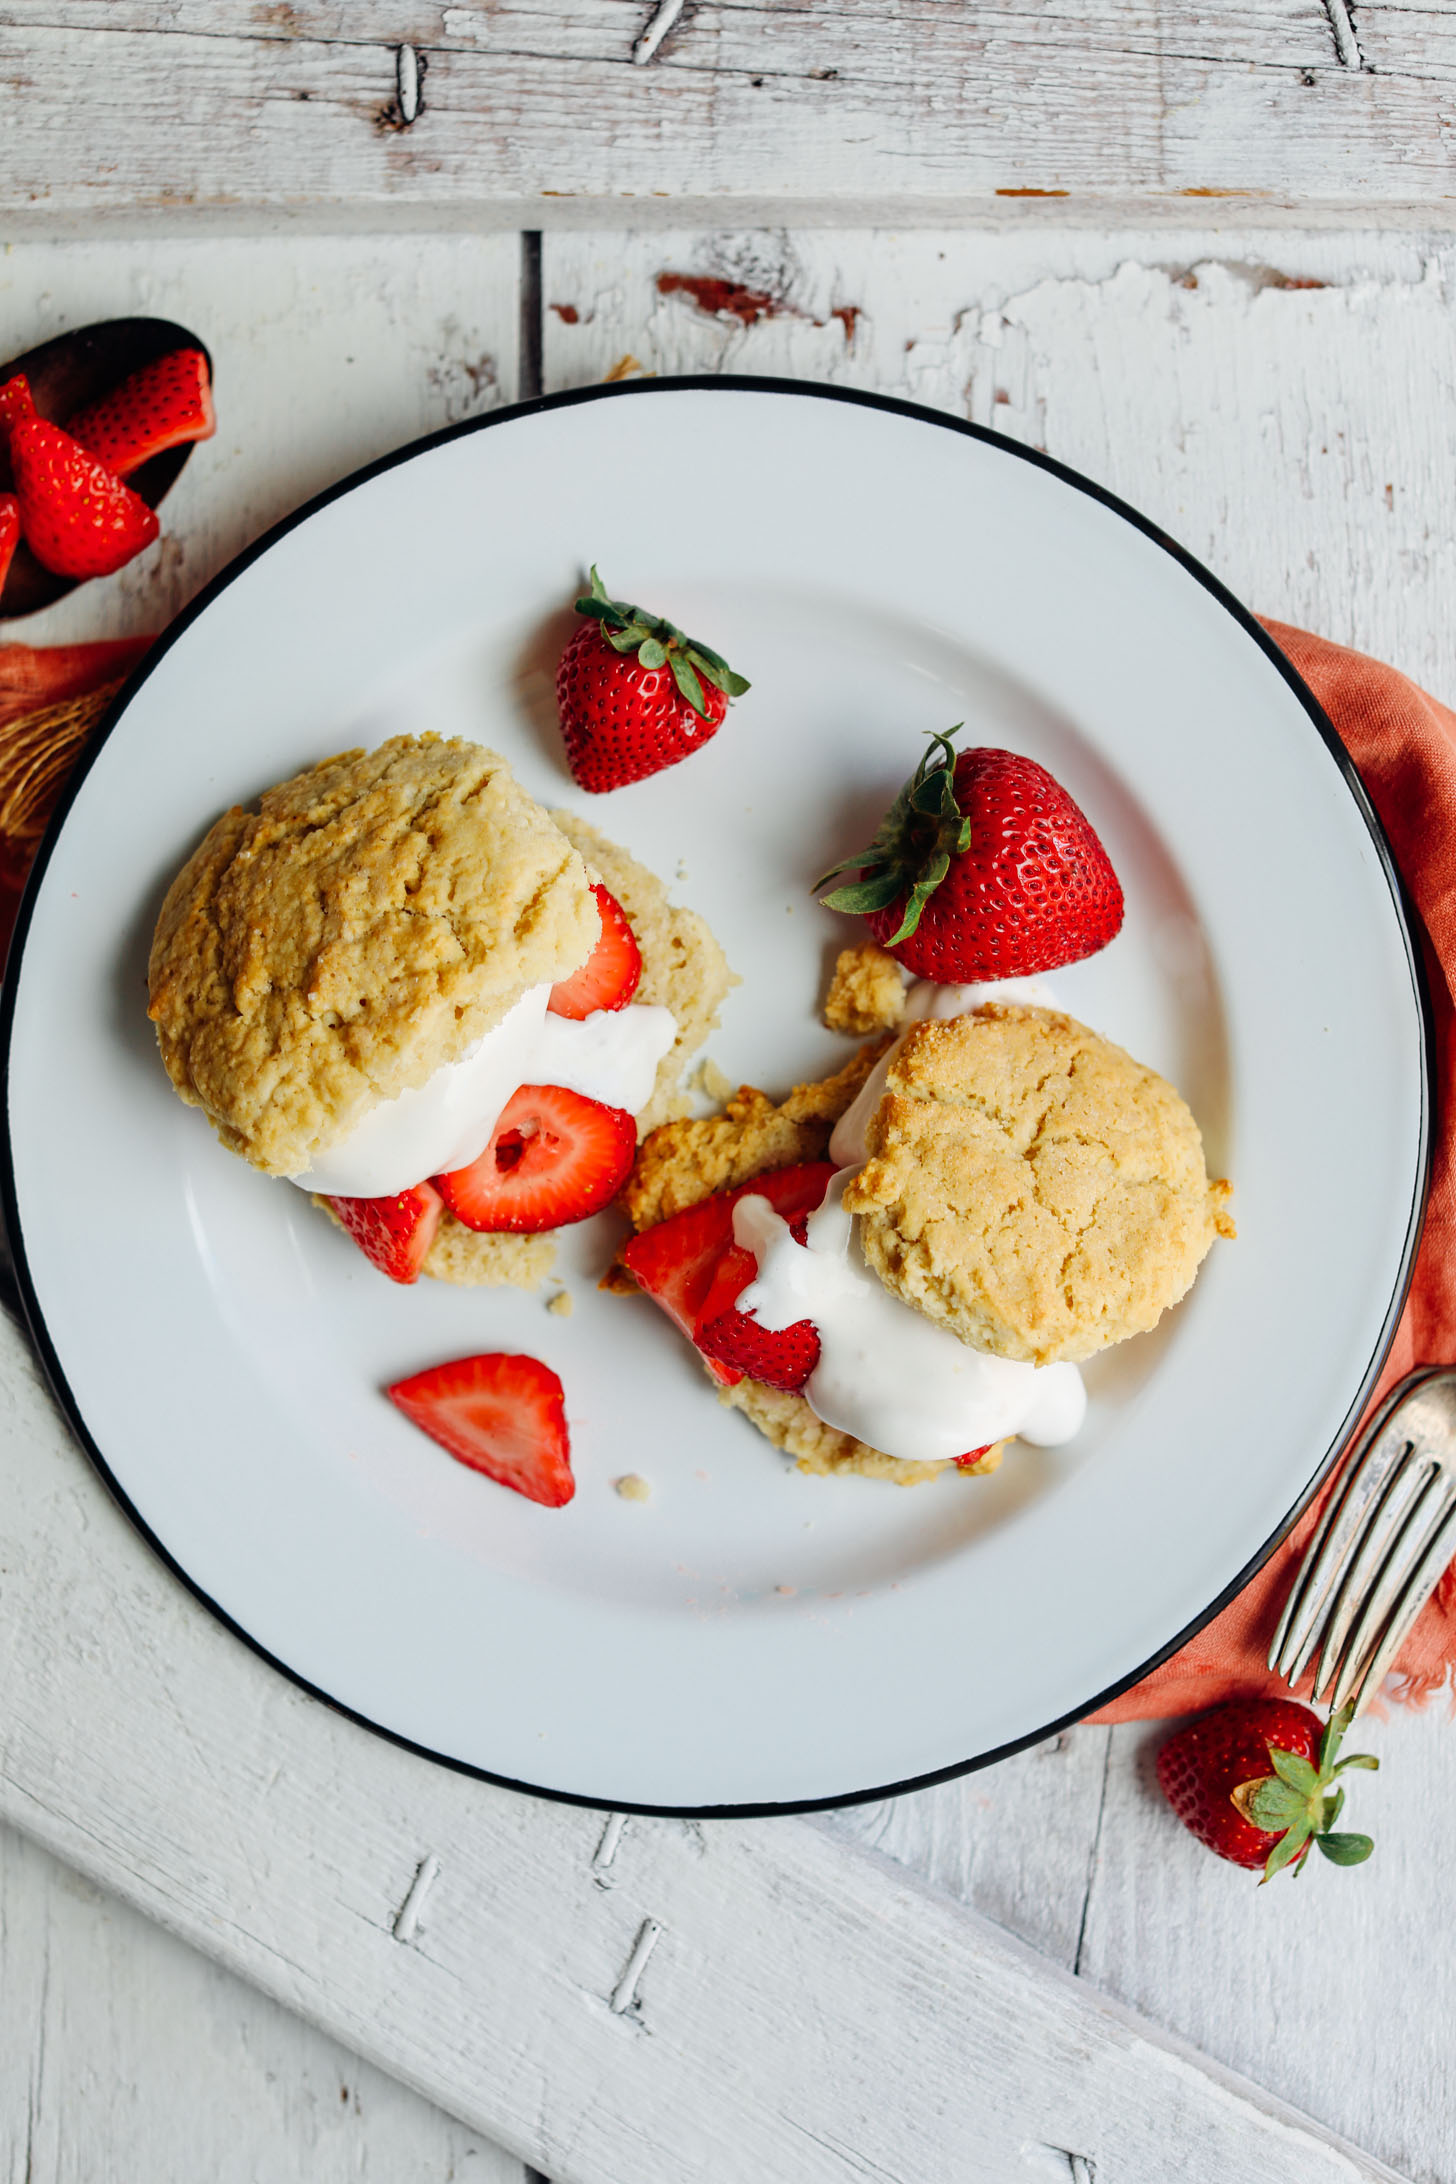 Vegan GF Strawberry Shortcake ready to be devoured as a delicious plant-based dessert